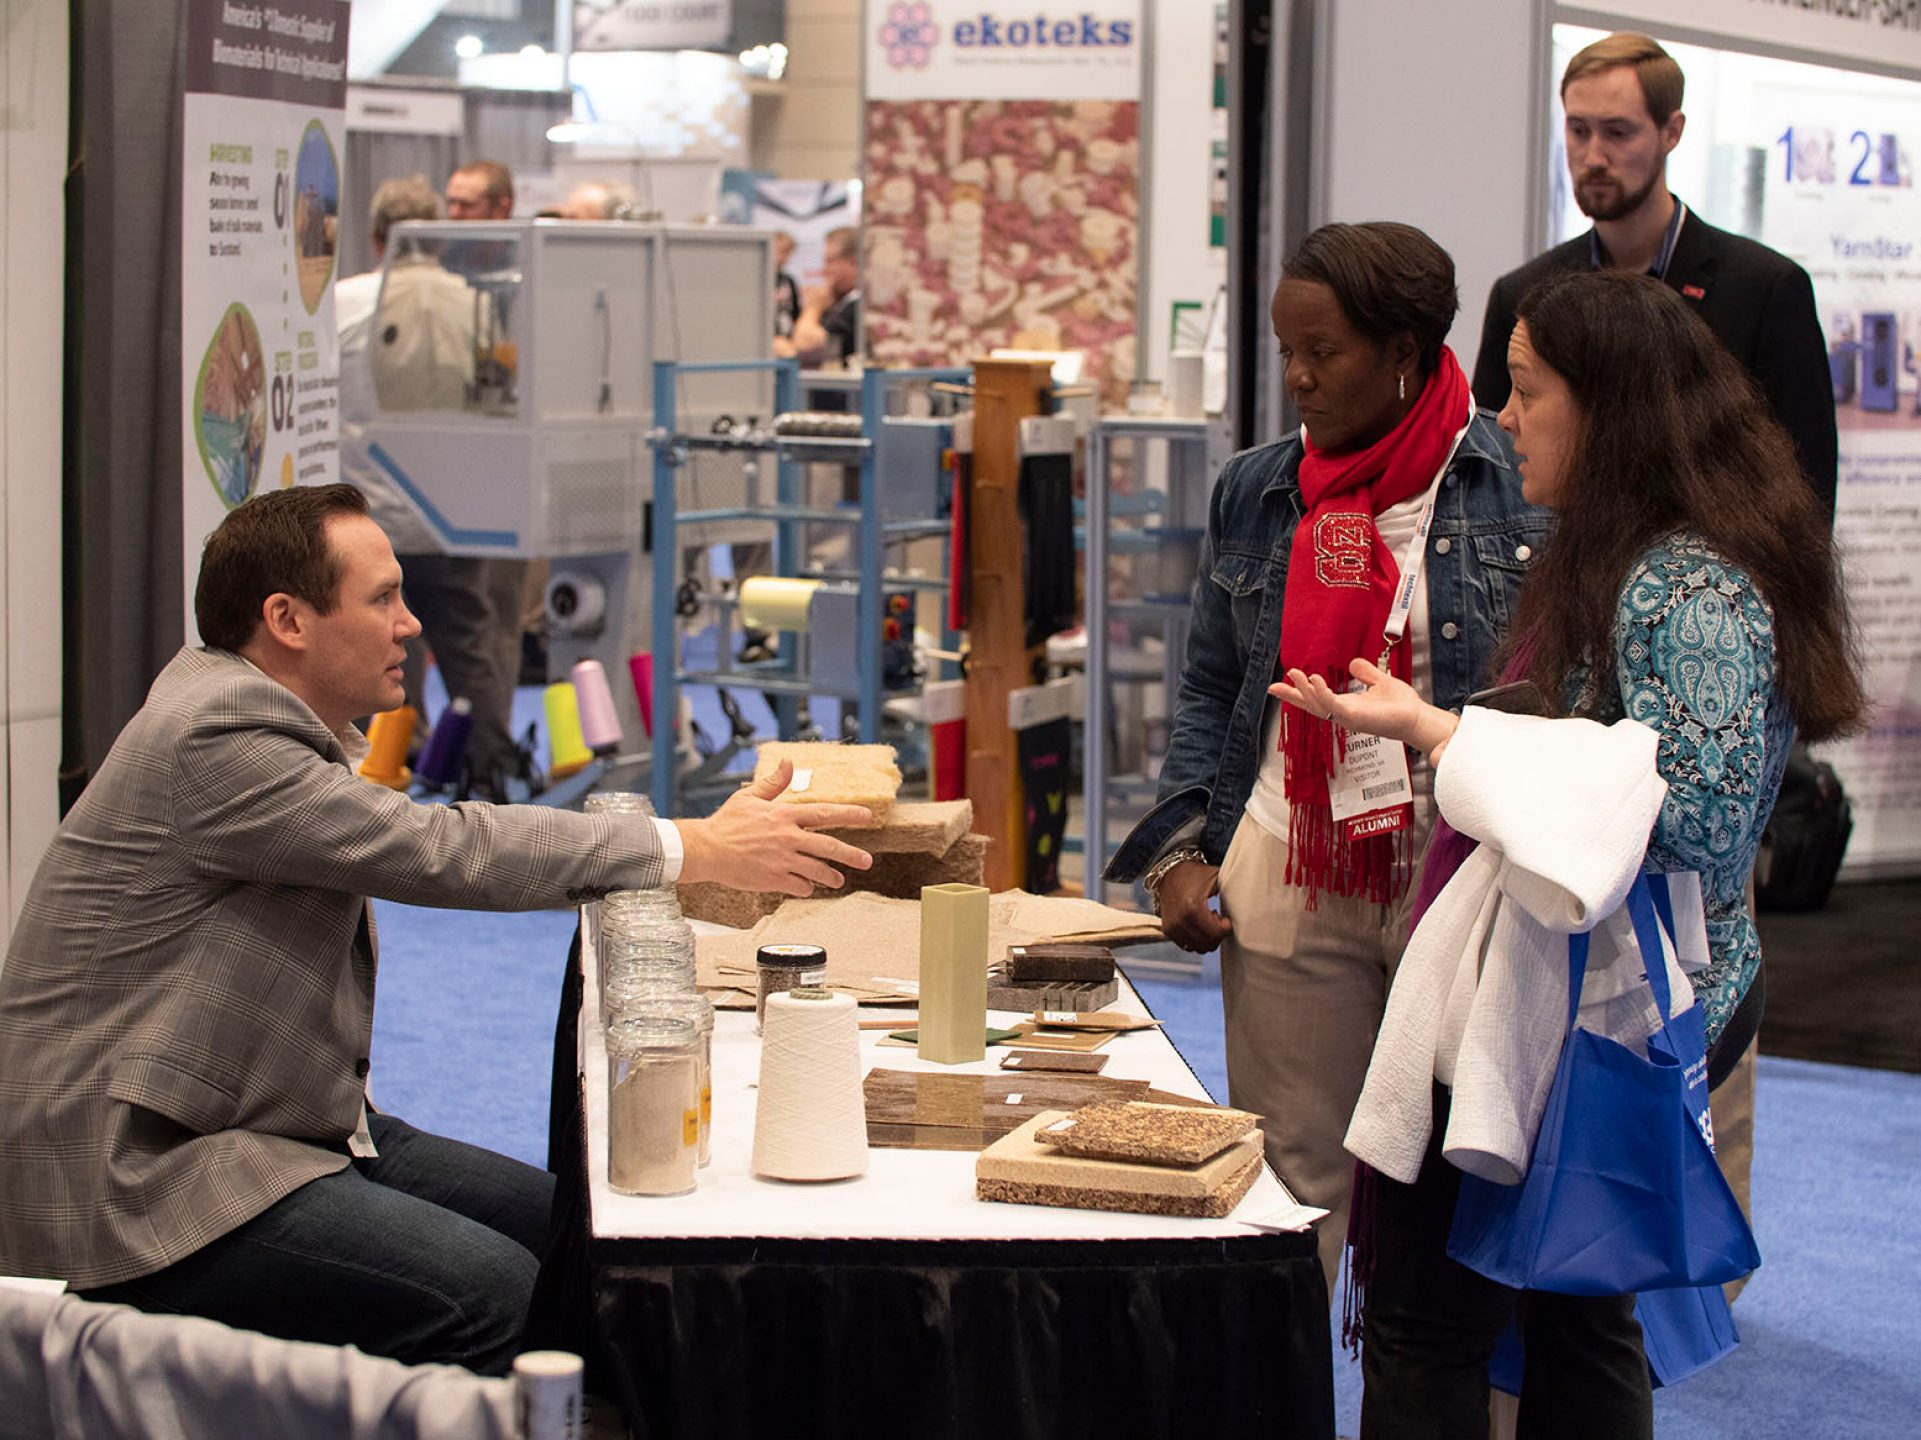 The event brought 165 exhibitors to the Raleigh area. © Messe Frankfurt/ Techtextil North America